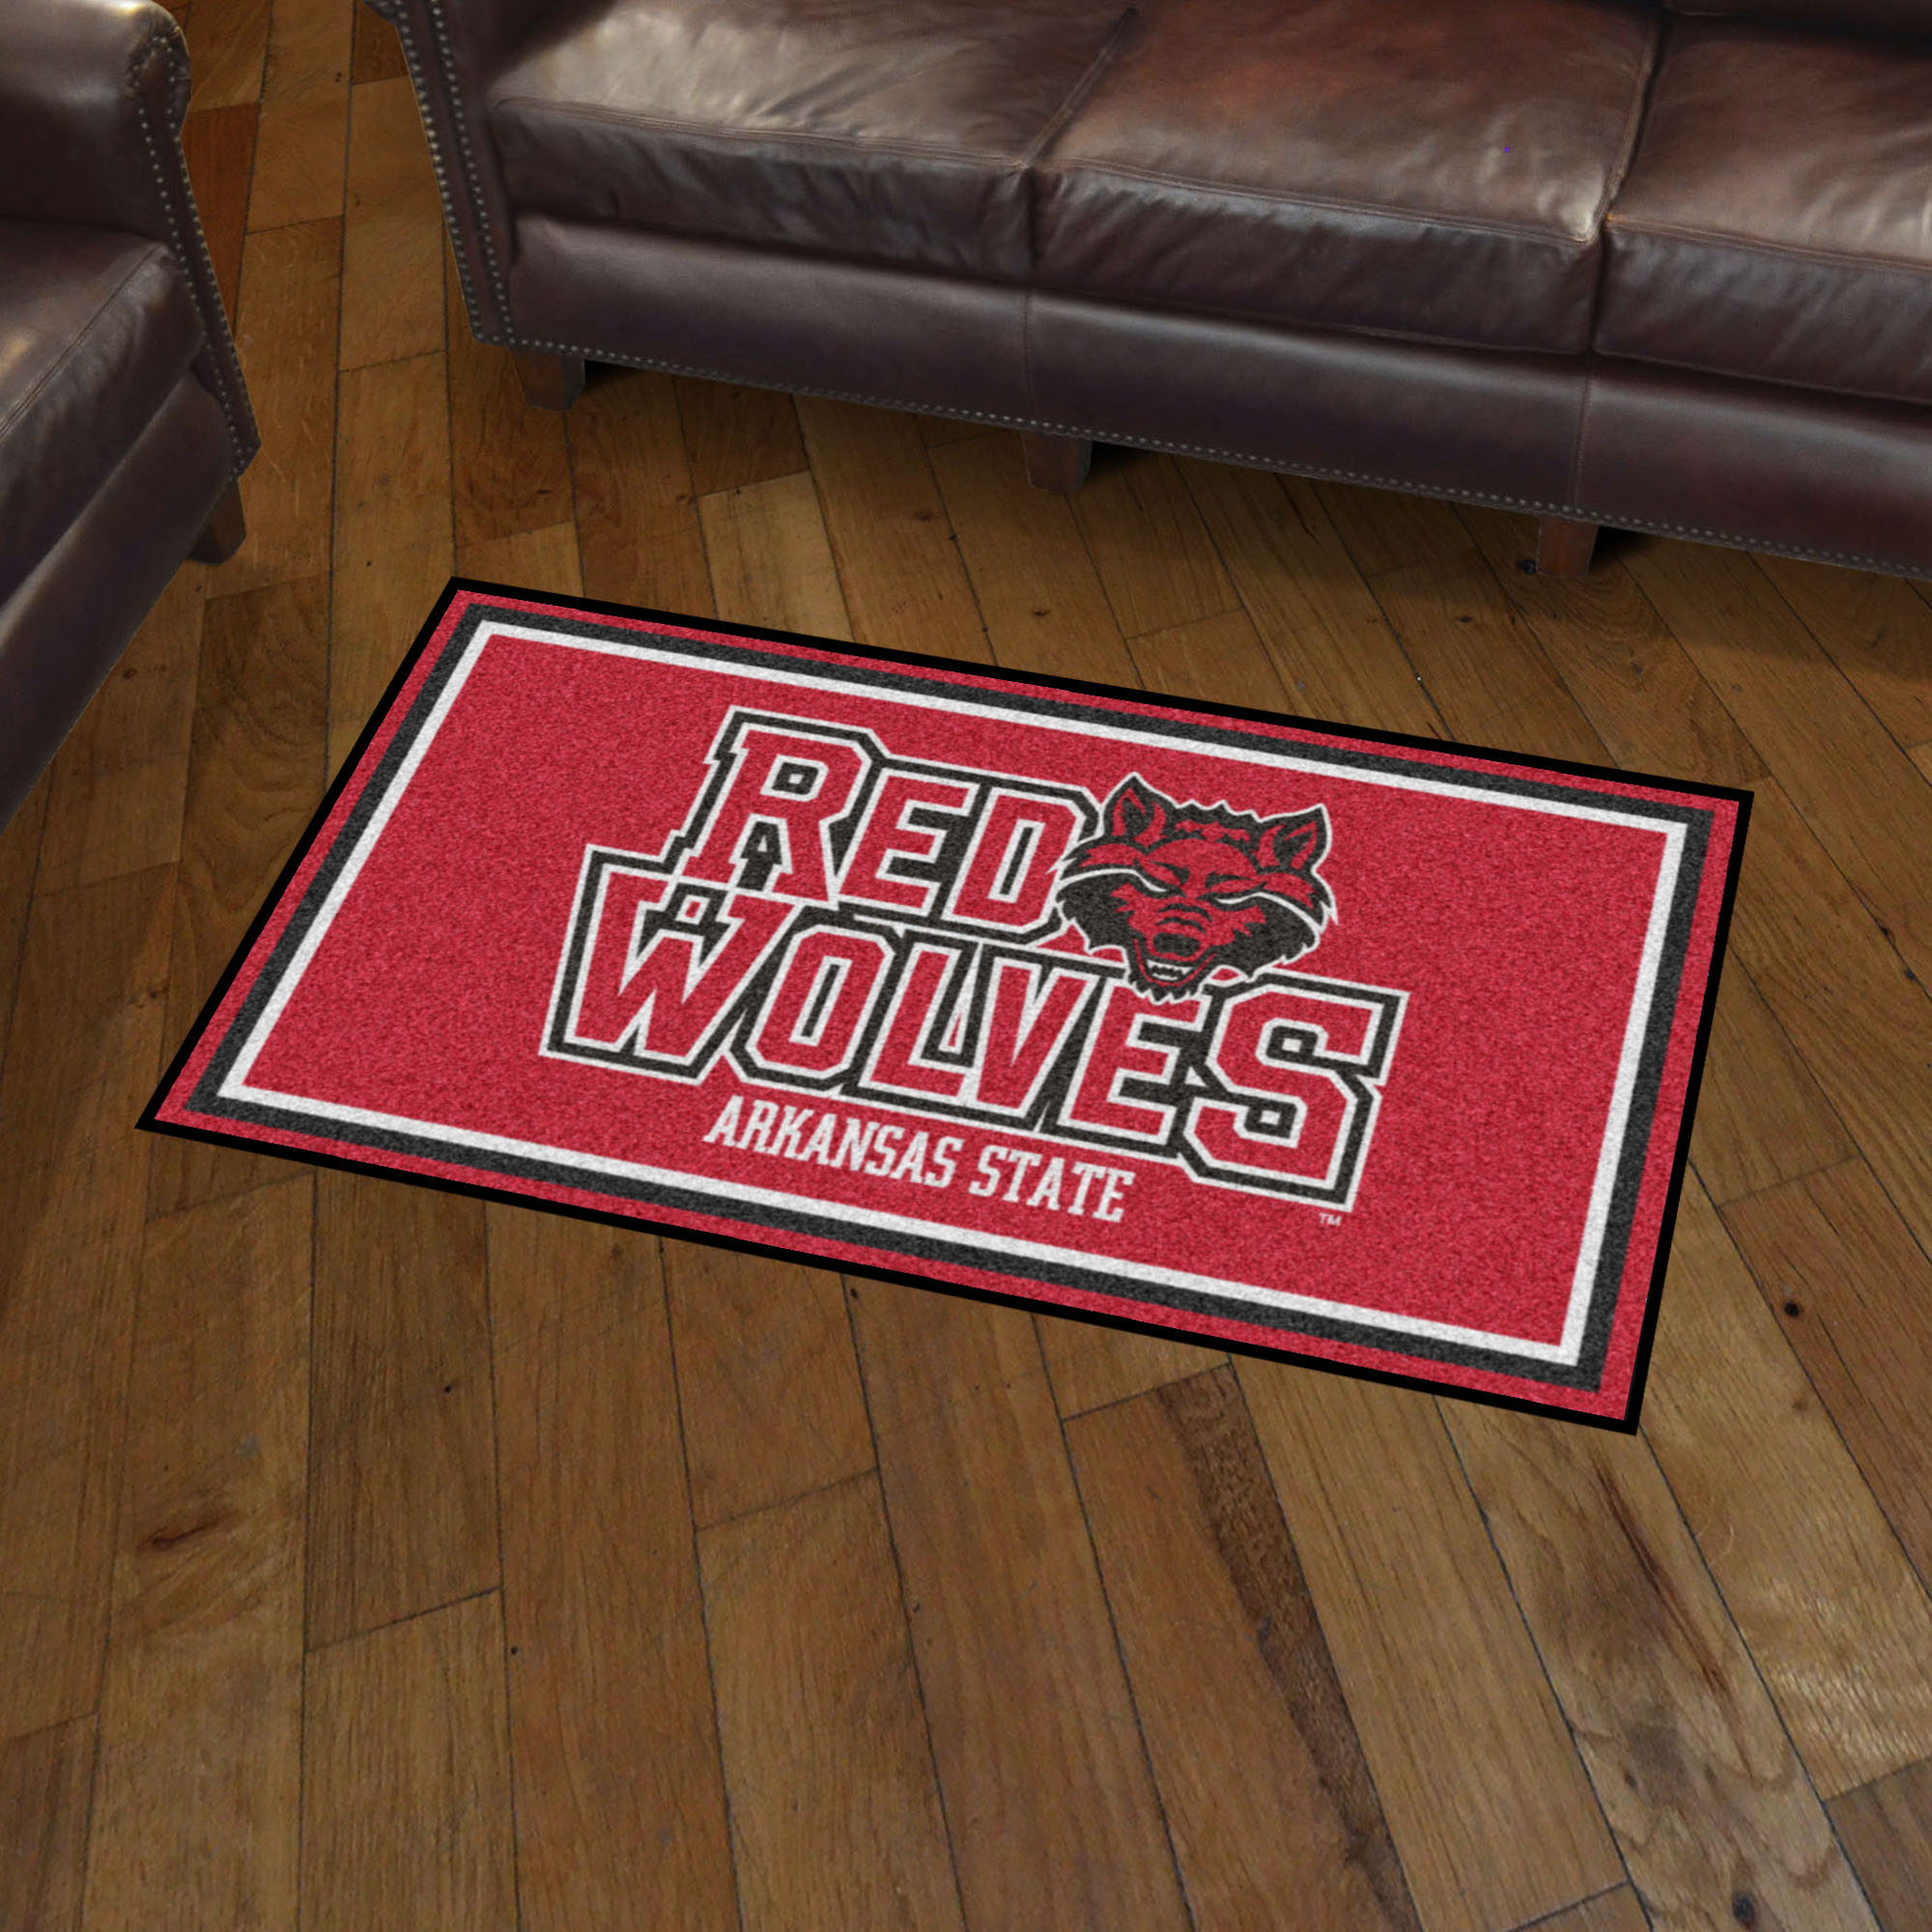 Arkansas State University Area rug - 3' x 5' Nylon